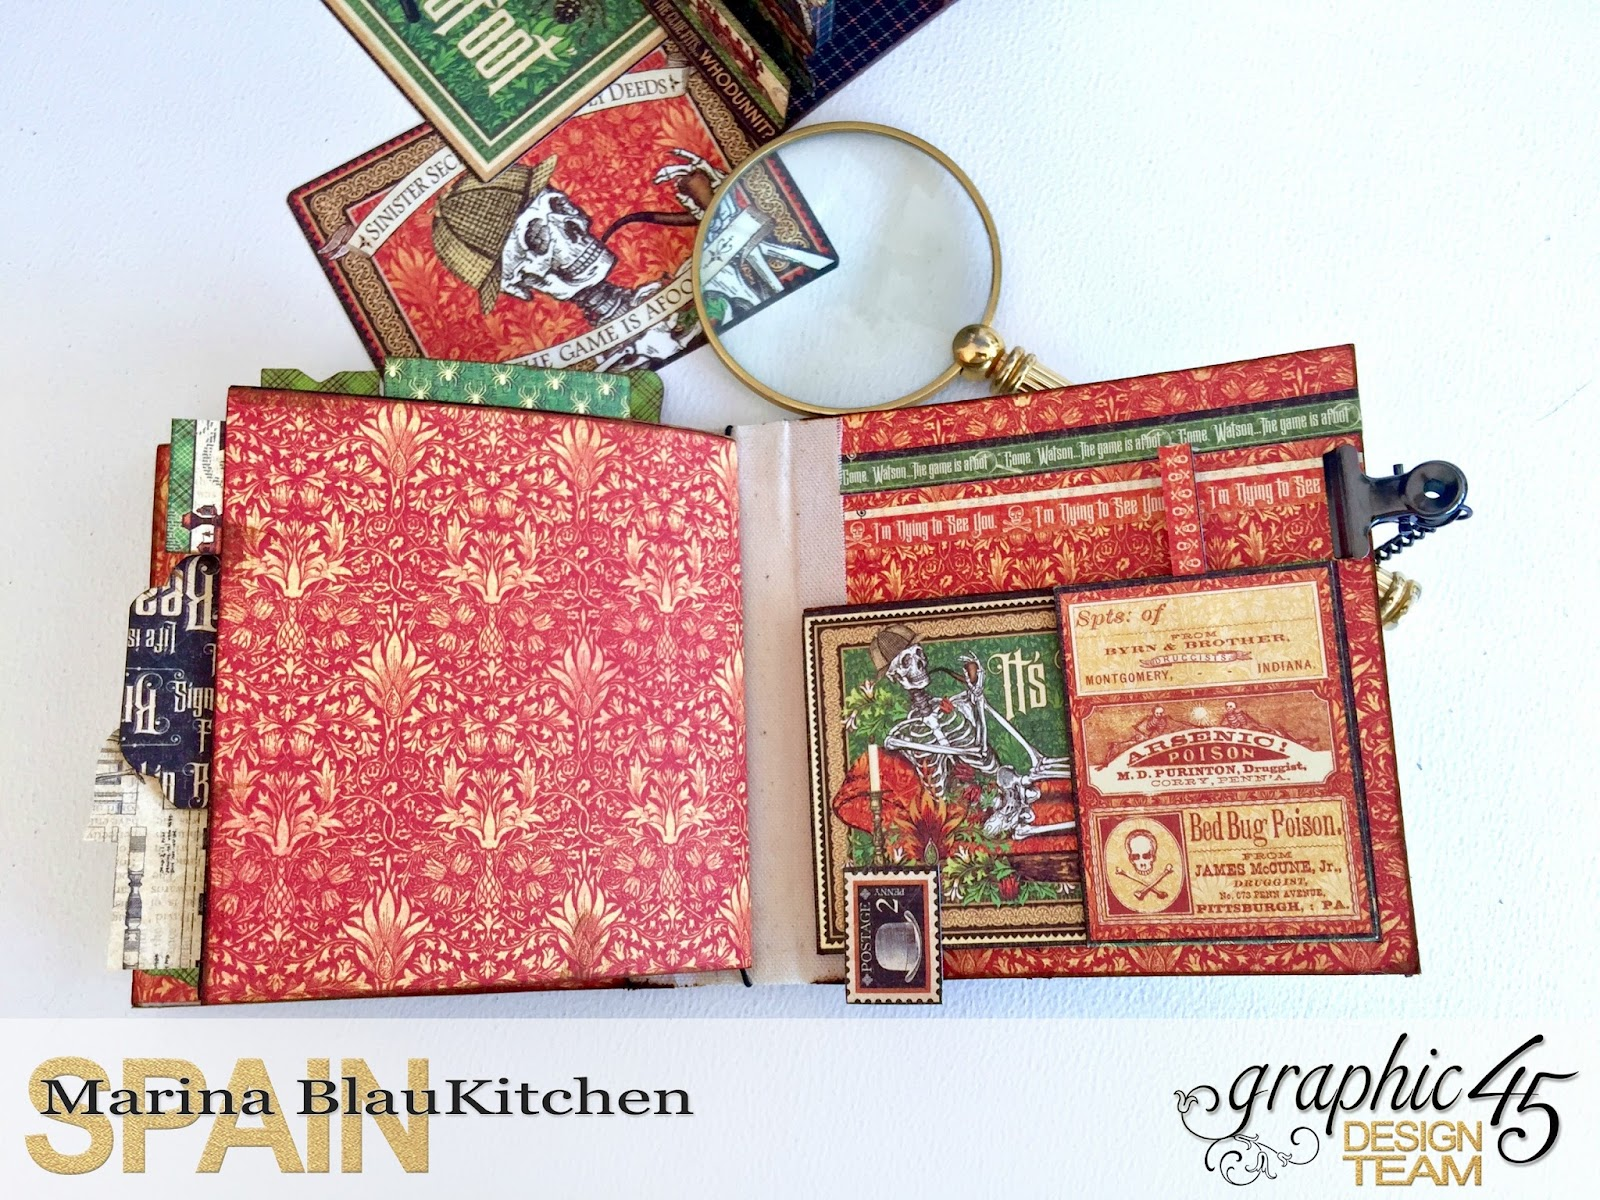 Stand and Mini Album Master Detective by Marina Blaukitchen Product by Graphic 45 photo 25.jpg